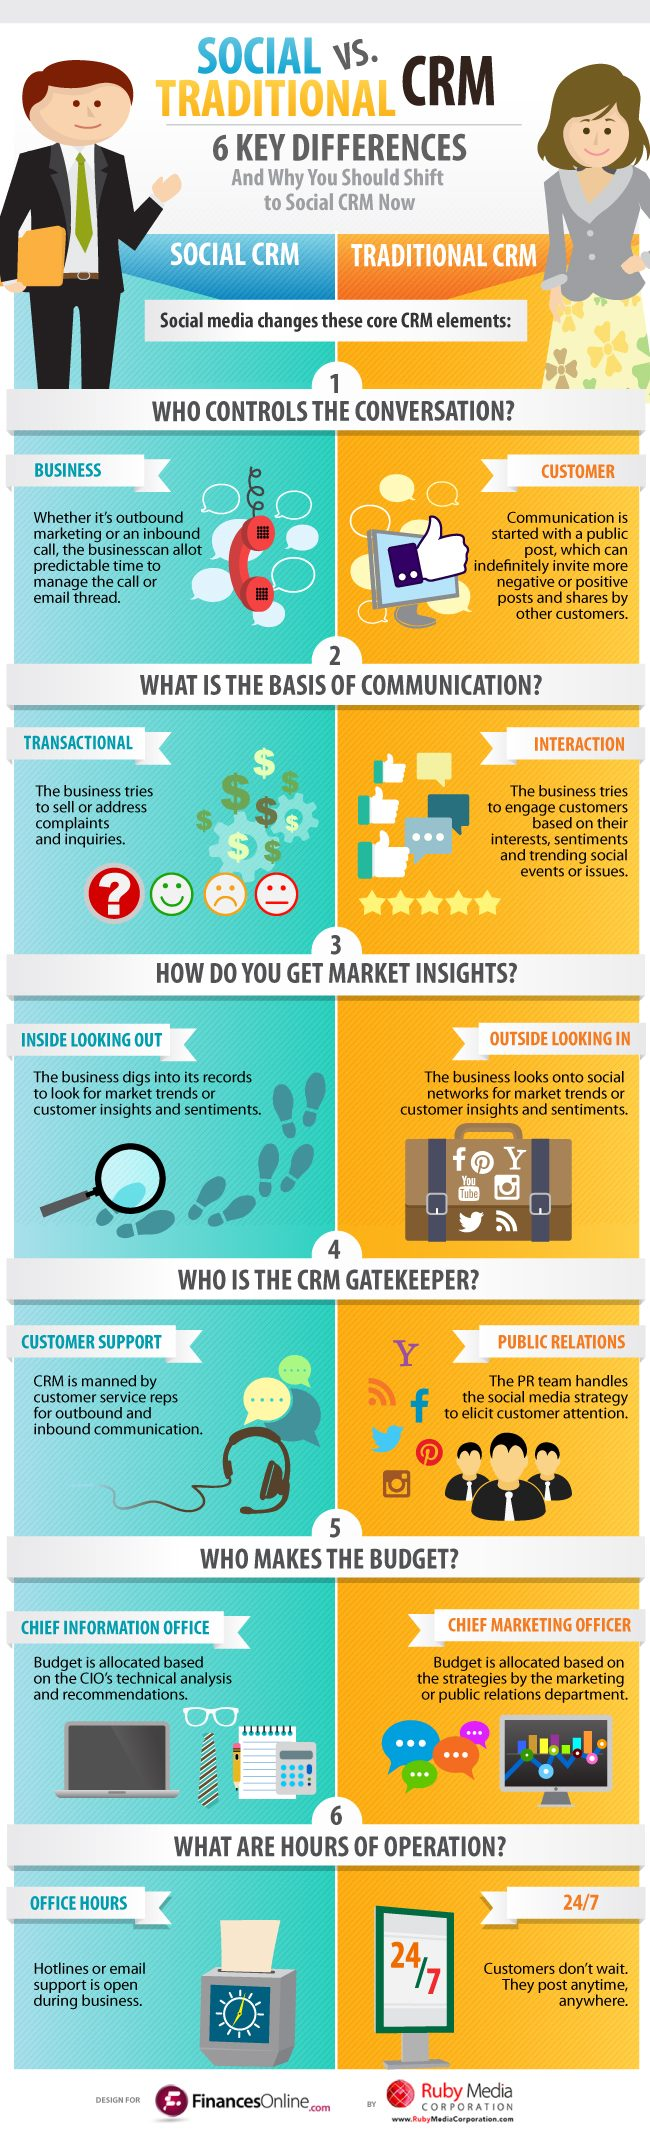 What Is Social CRM?